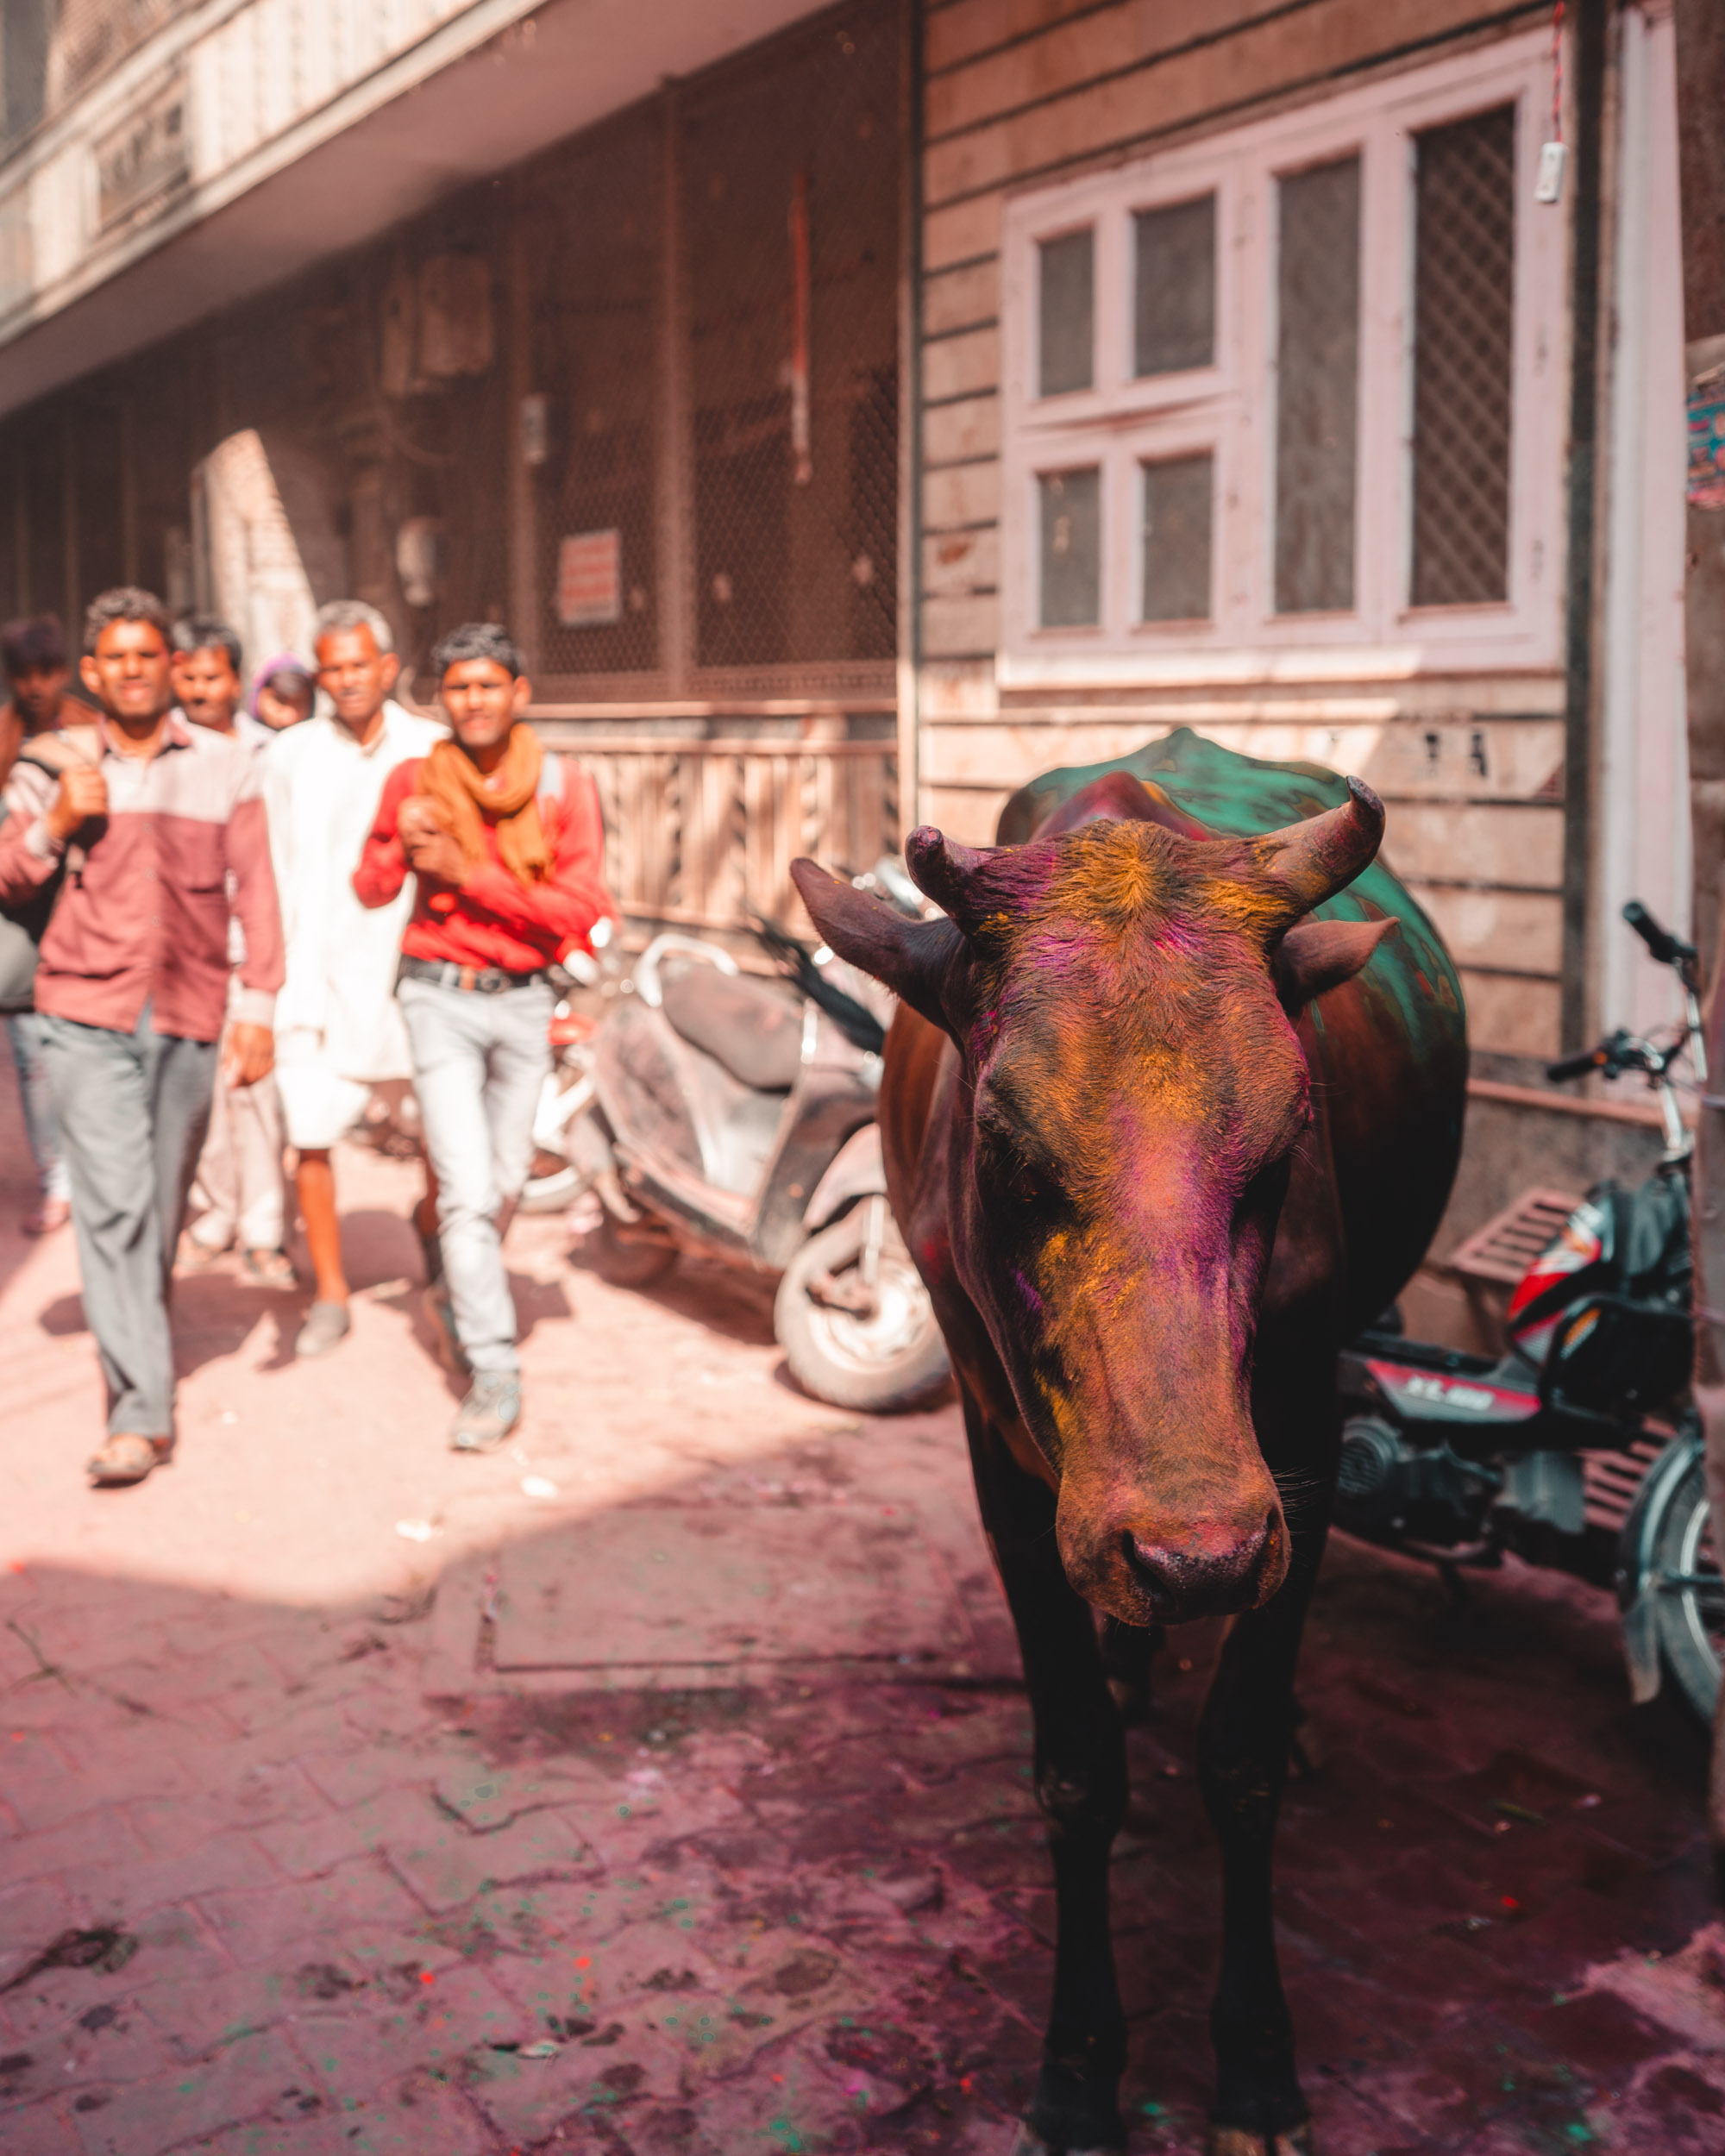 Cow covered in colorful powder in the streets of Vrindavan, India during Holi Festival via @finduslost